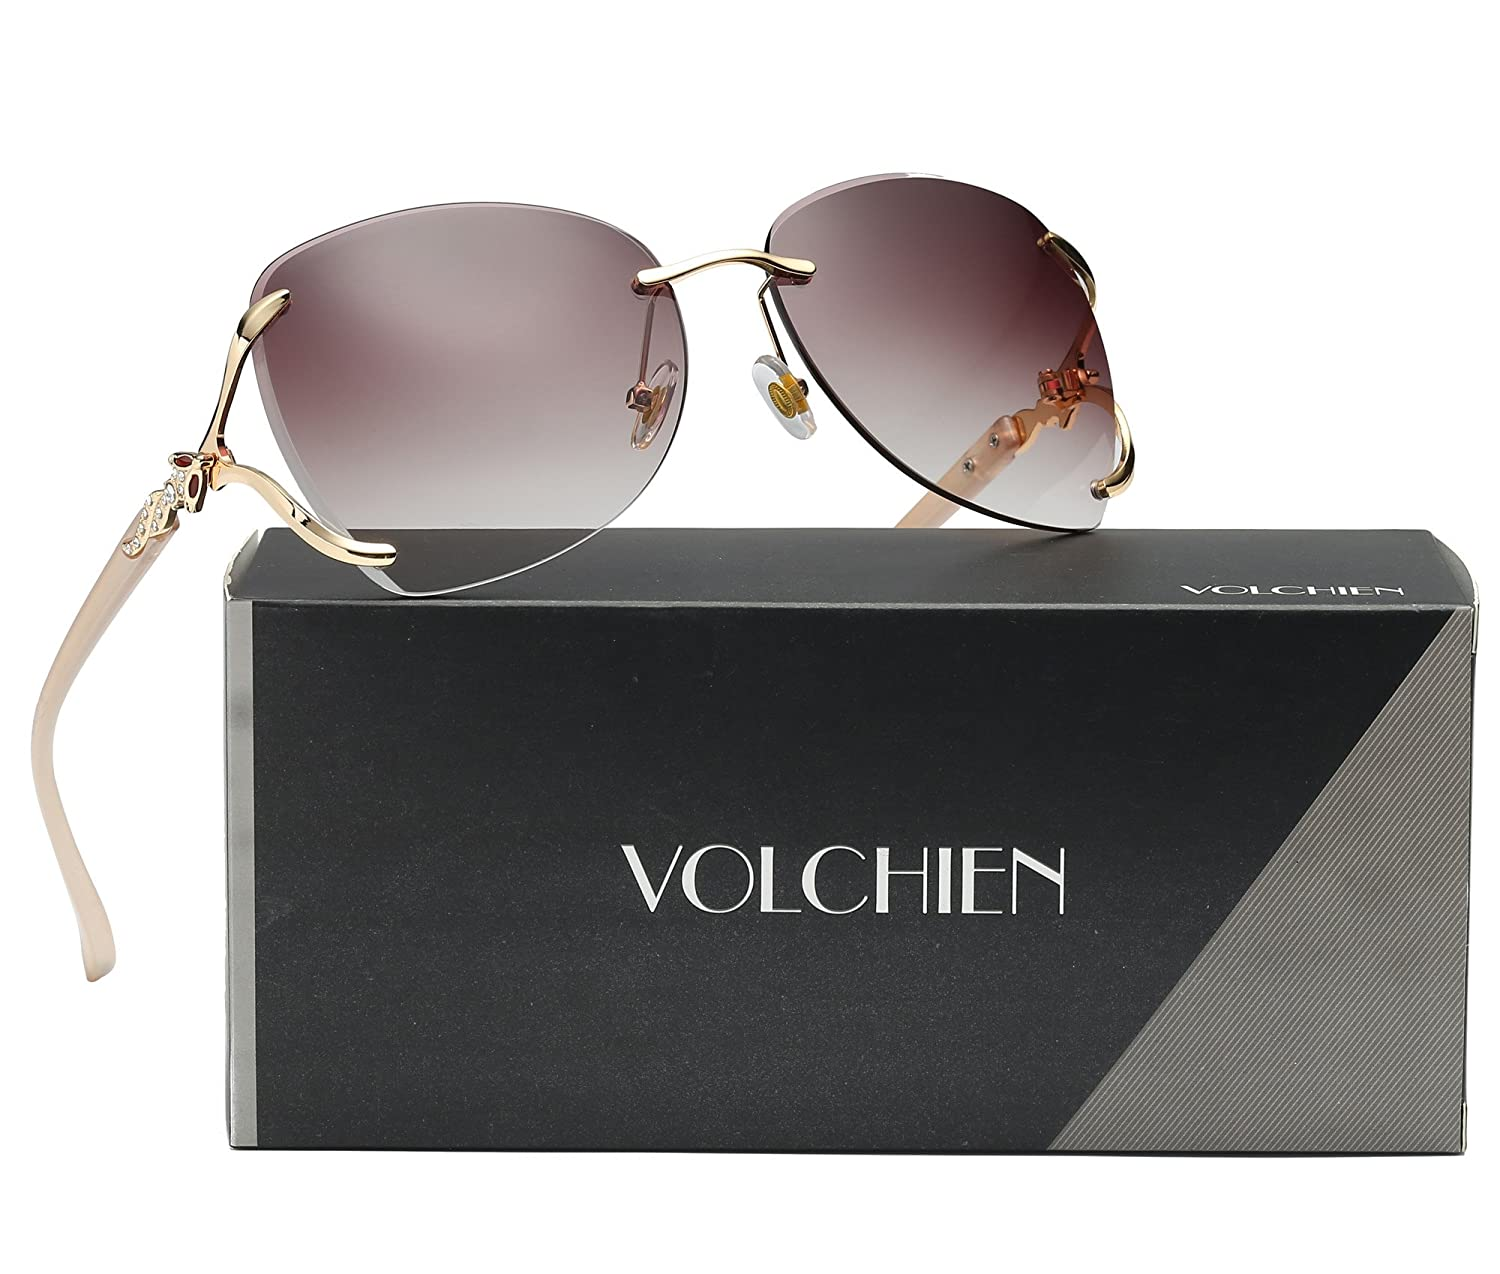 78fa9de6fe Amazon.com  VOLCHIEN Rimless Women Shades Sunglasses Bling Frame Round Lens  Sun Glass Metal Frame Sunglasses for Women Men VC1012 (Coffee  Lens Champagne ...